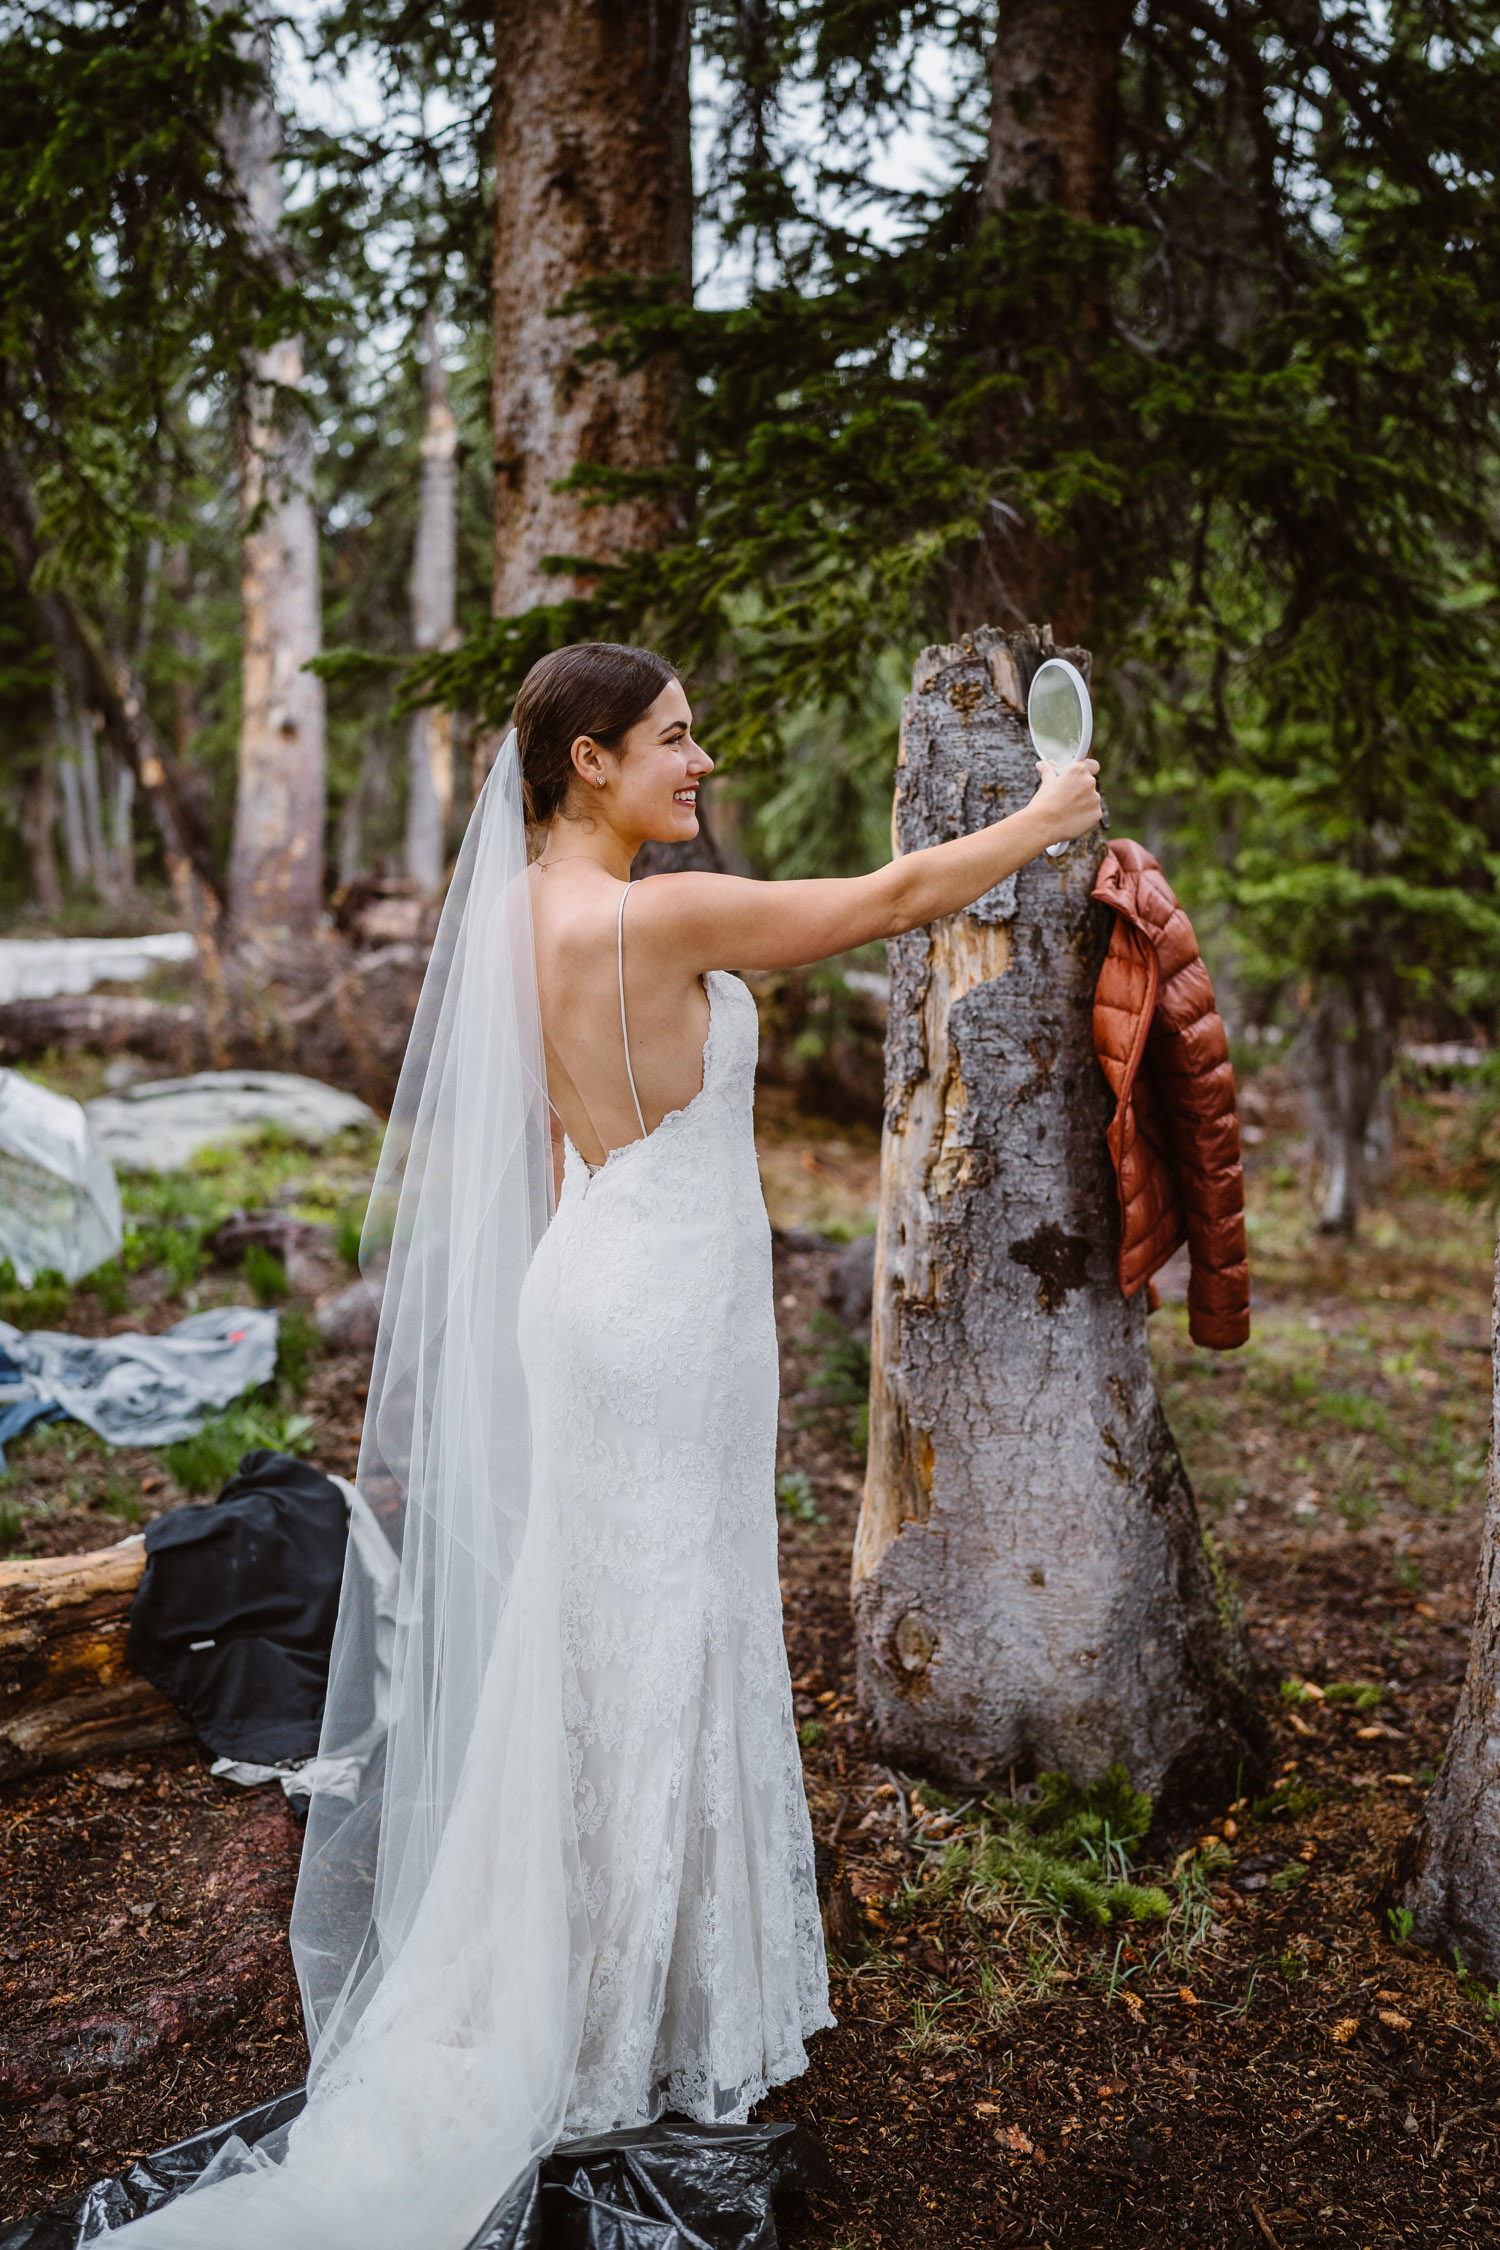 Bride Getting Ready for Hiking Elopement